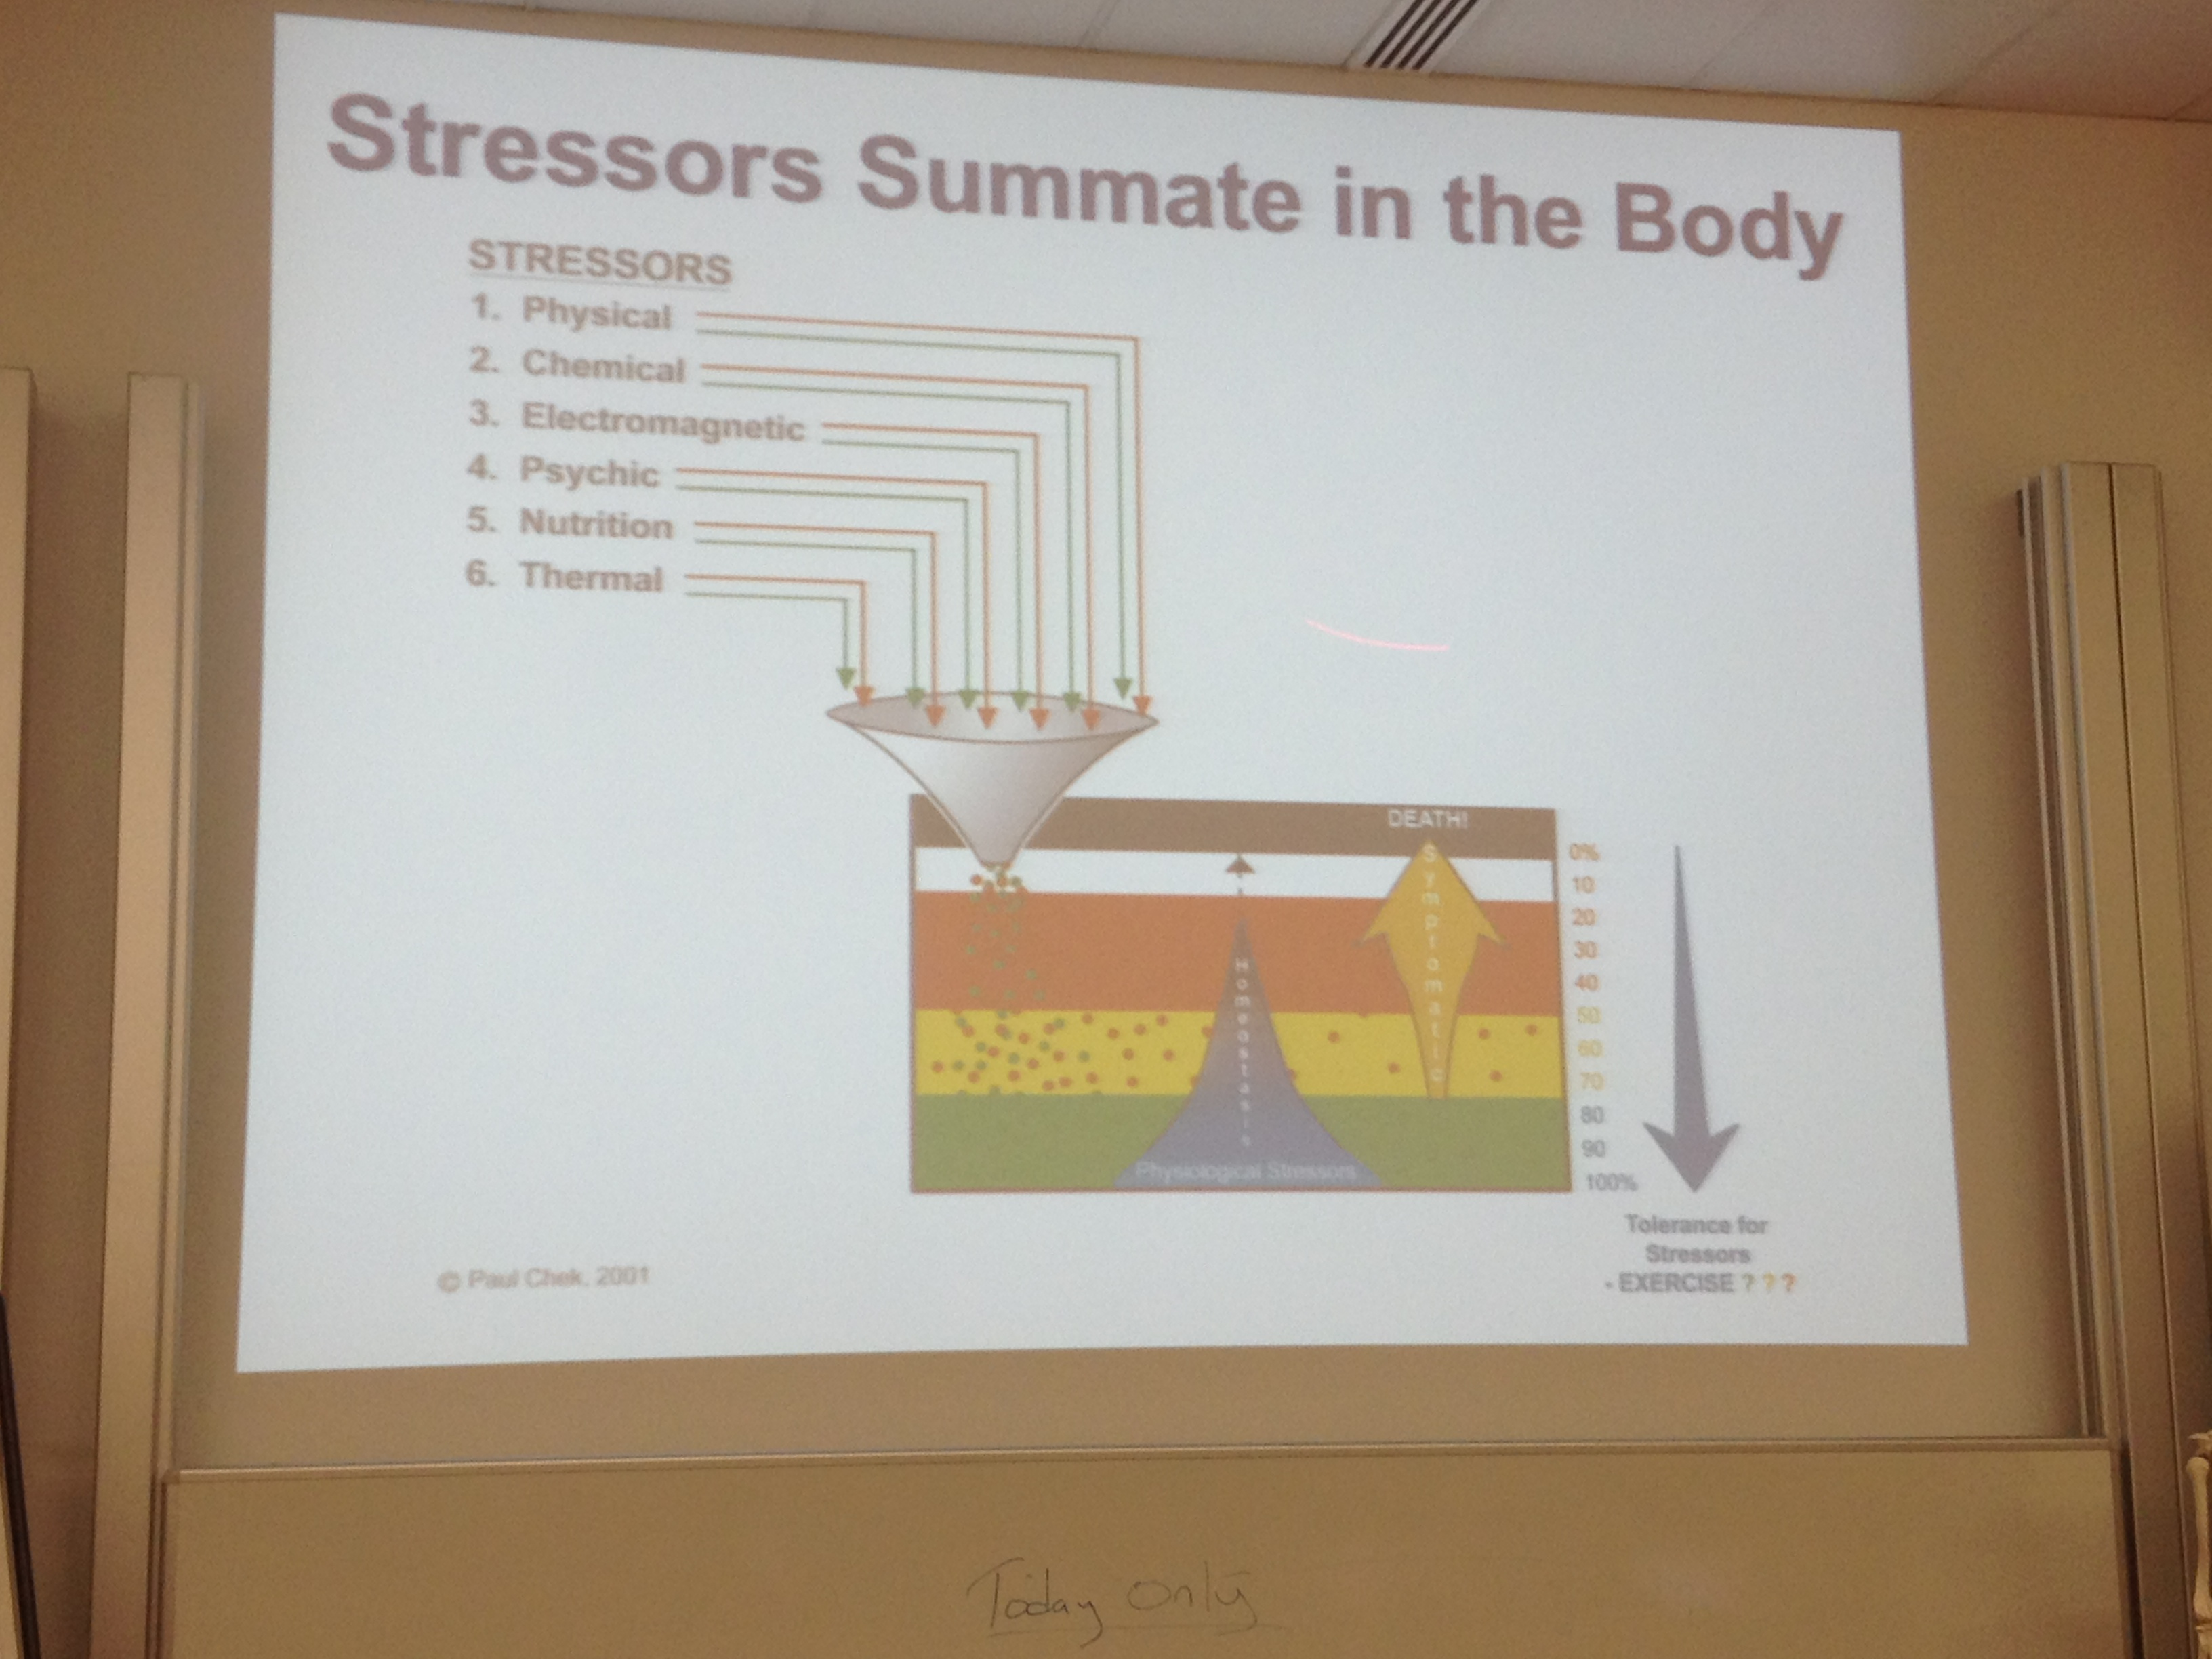 Paul Chek, Seminar, Stress, FitPro, beating stress